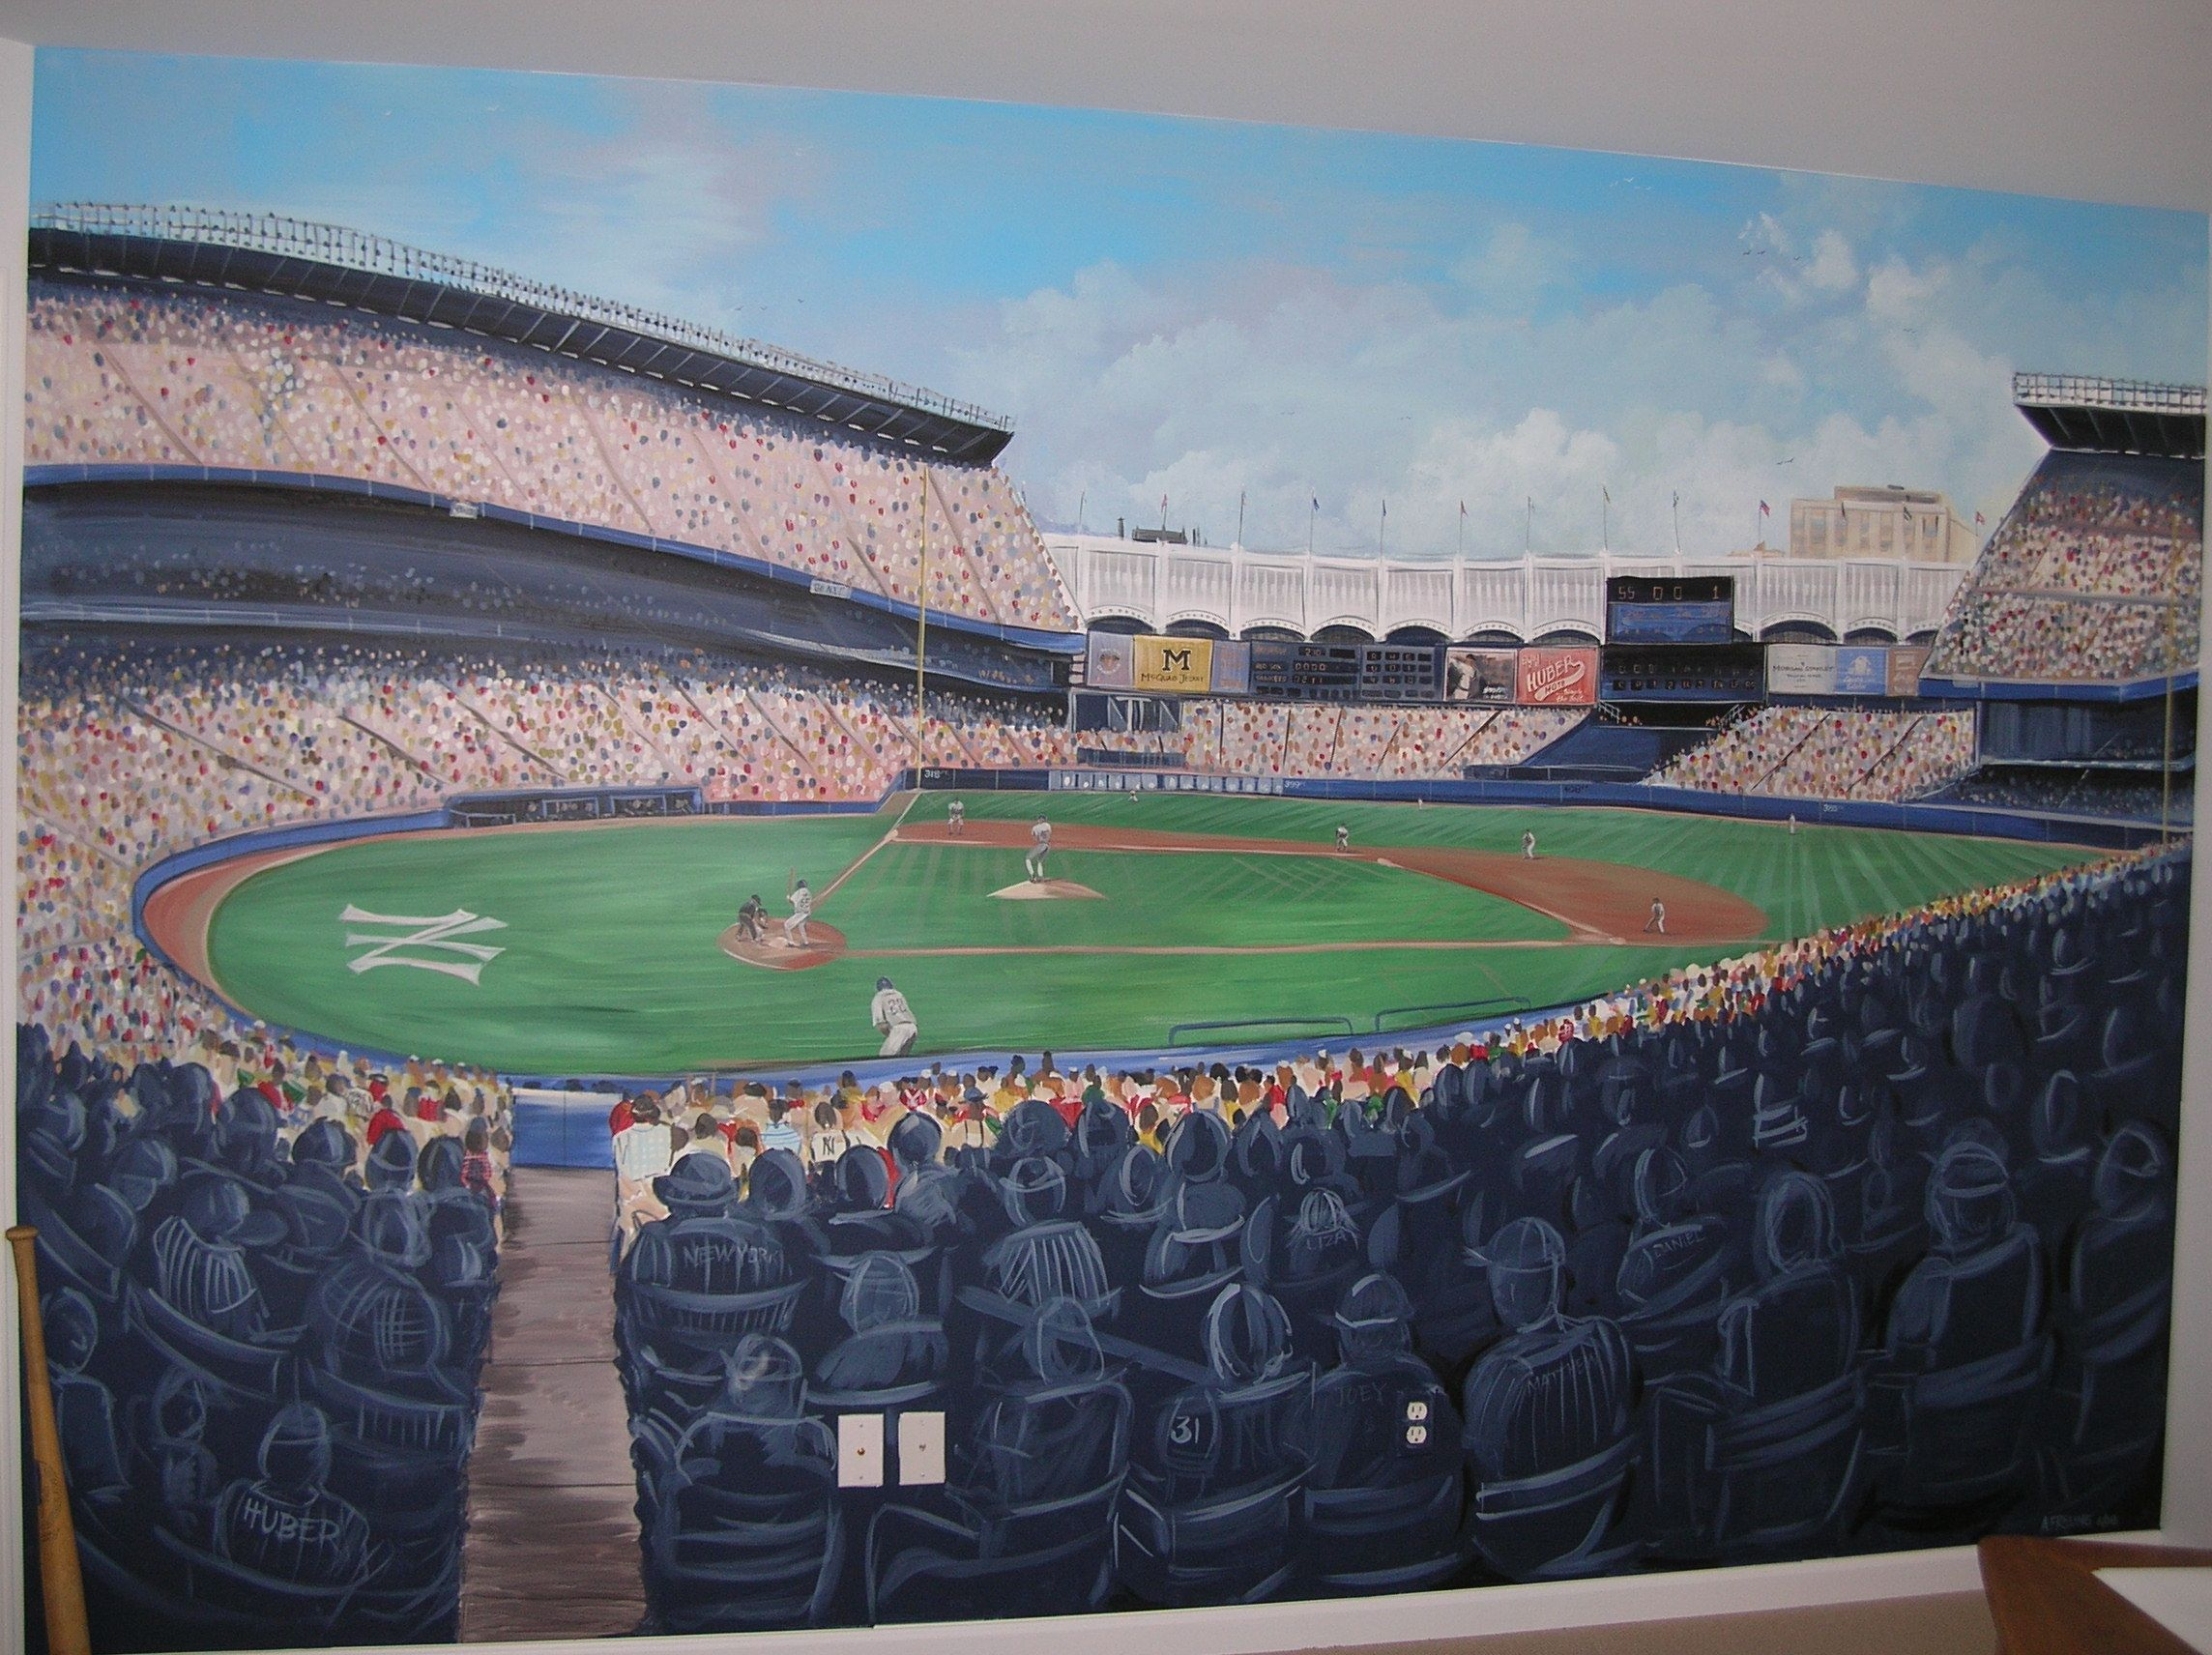 Painted Yankee Stadium Mural Complete With Fans Baseball Field And Customized Billboards The